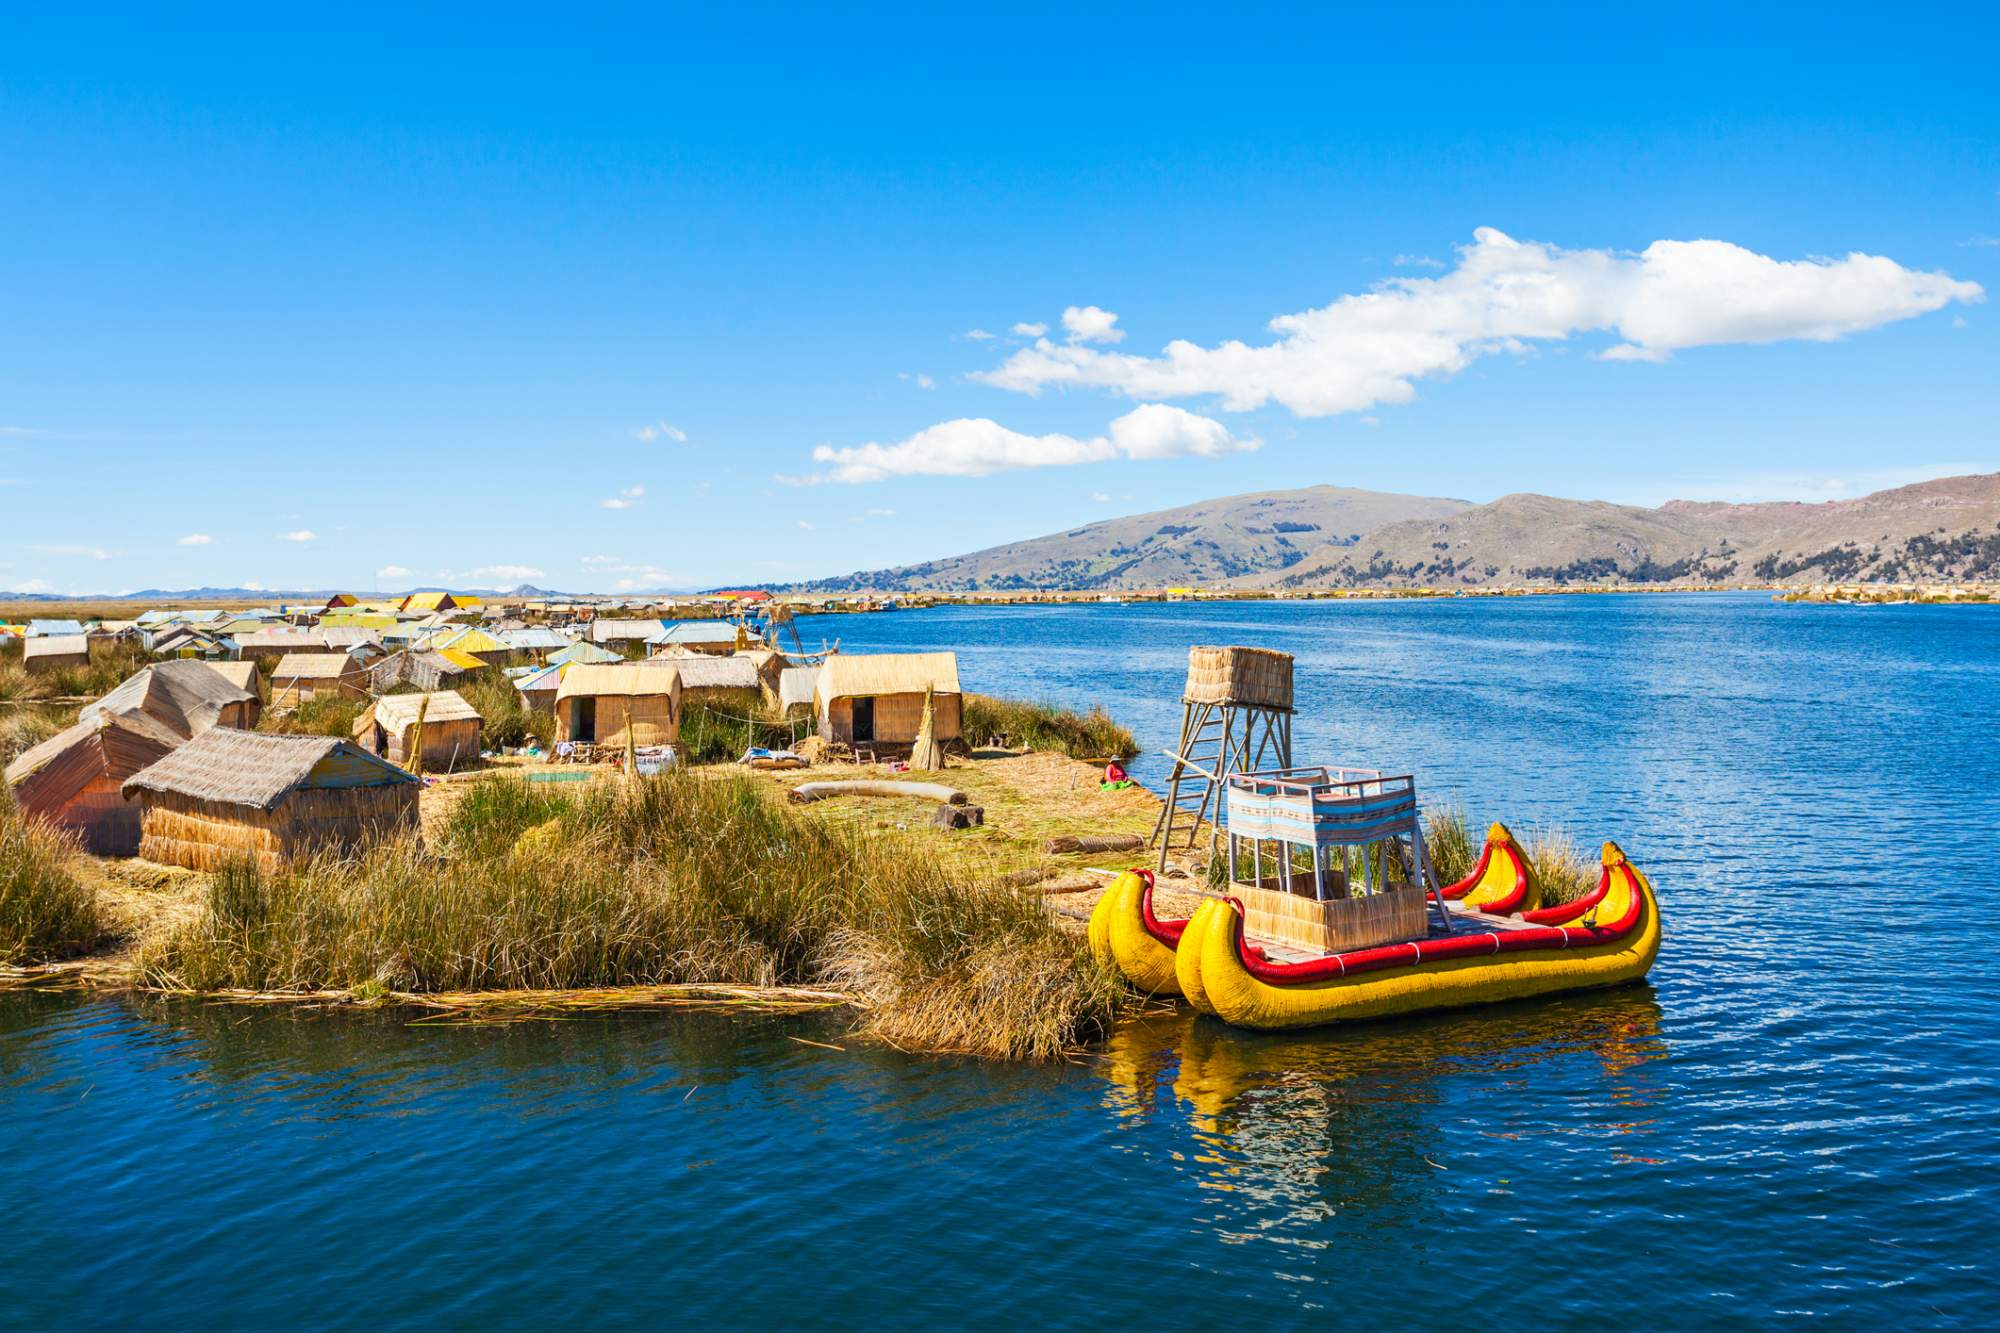 Traditional huts on Lake Titicaca